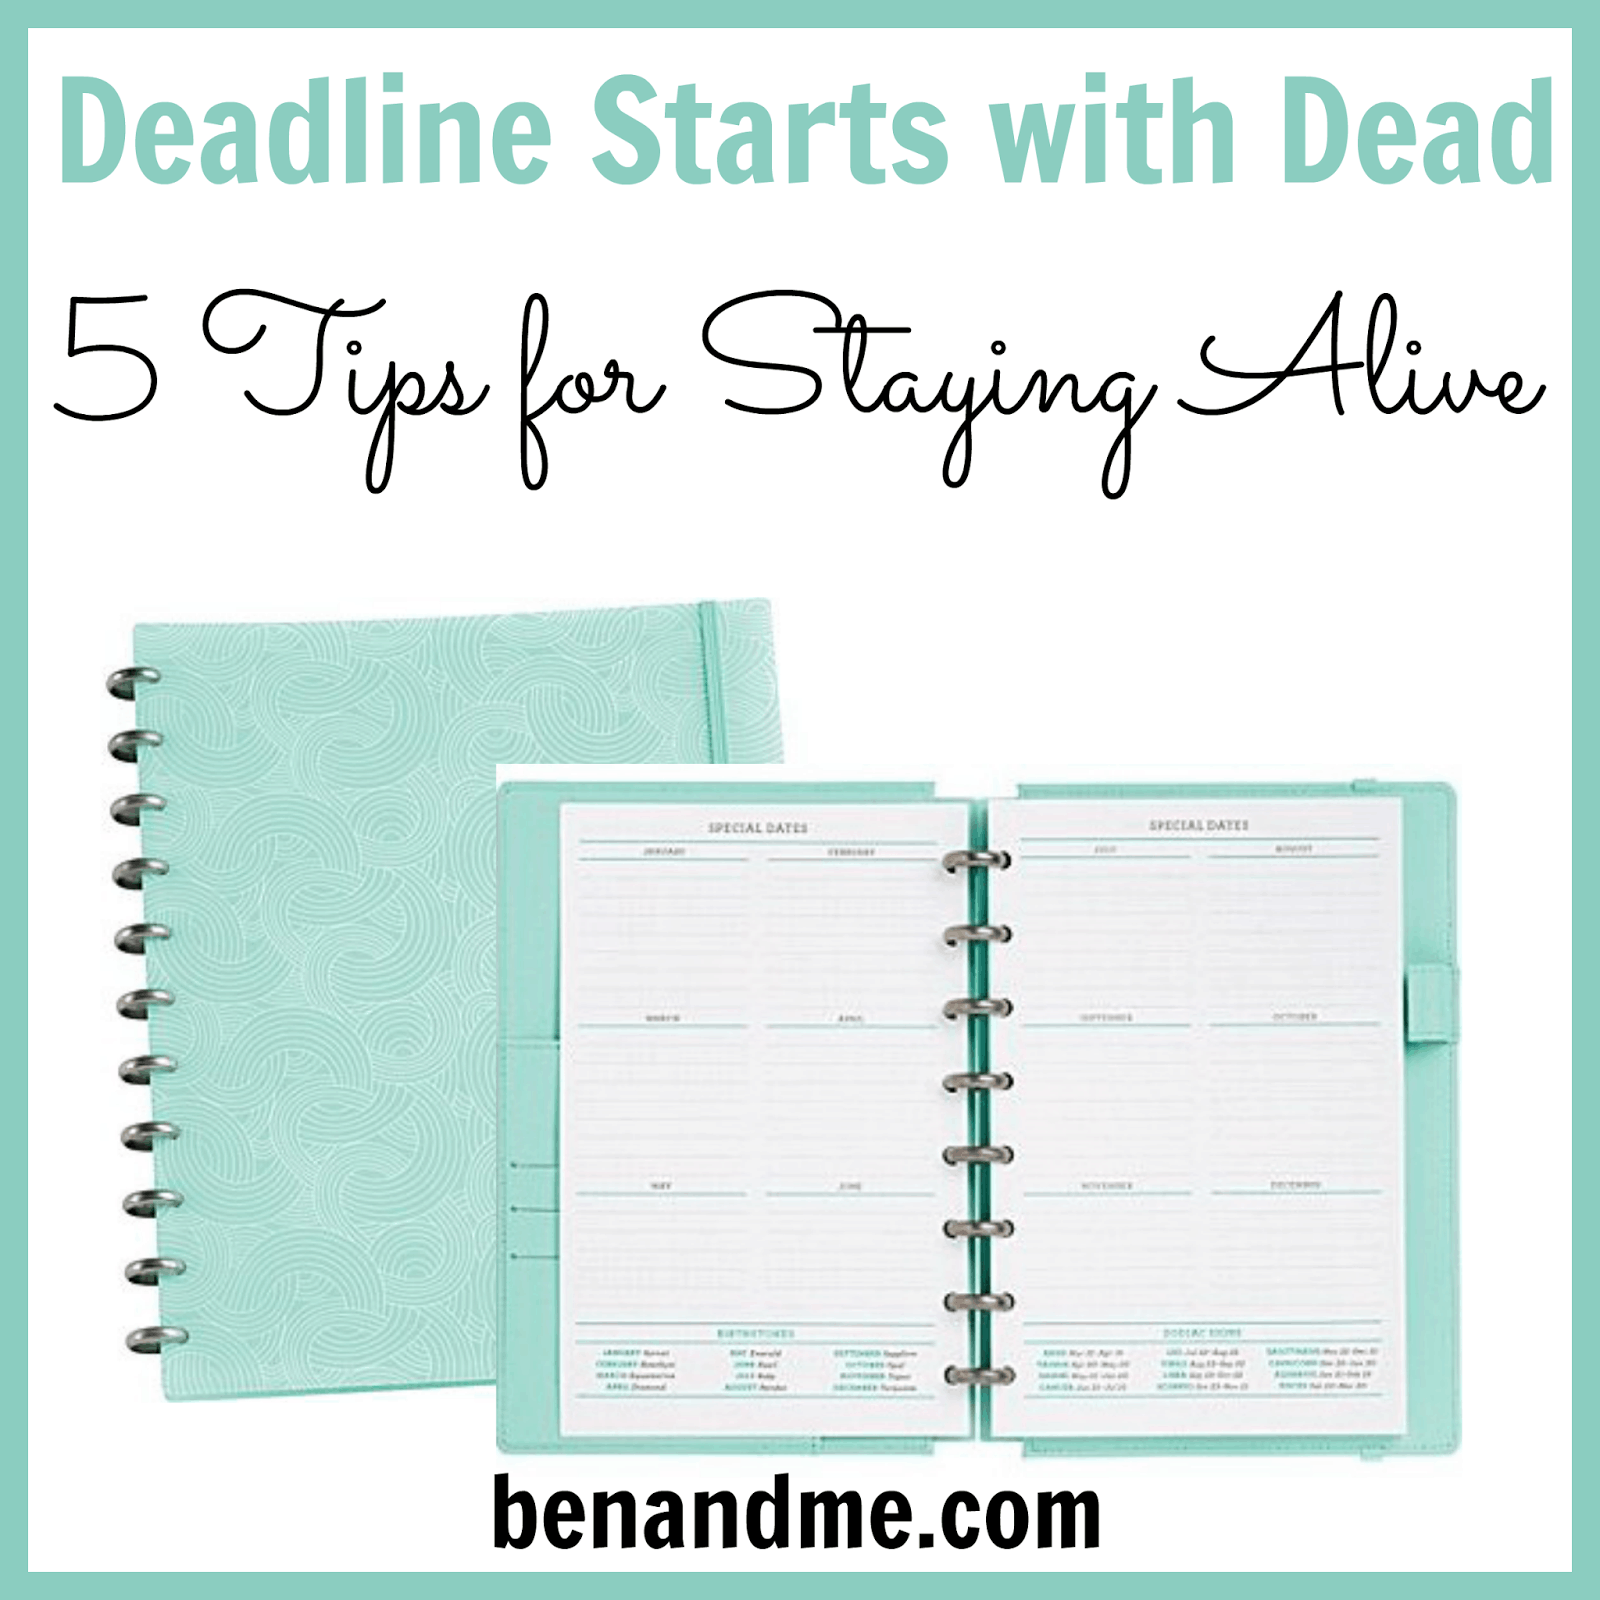 Deadline Starts with Dead: 5 Tips for Staying Alive